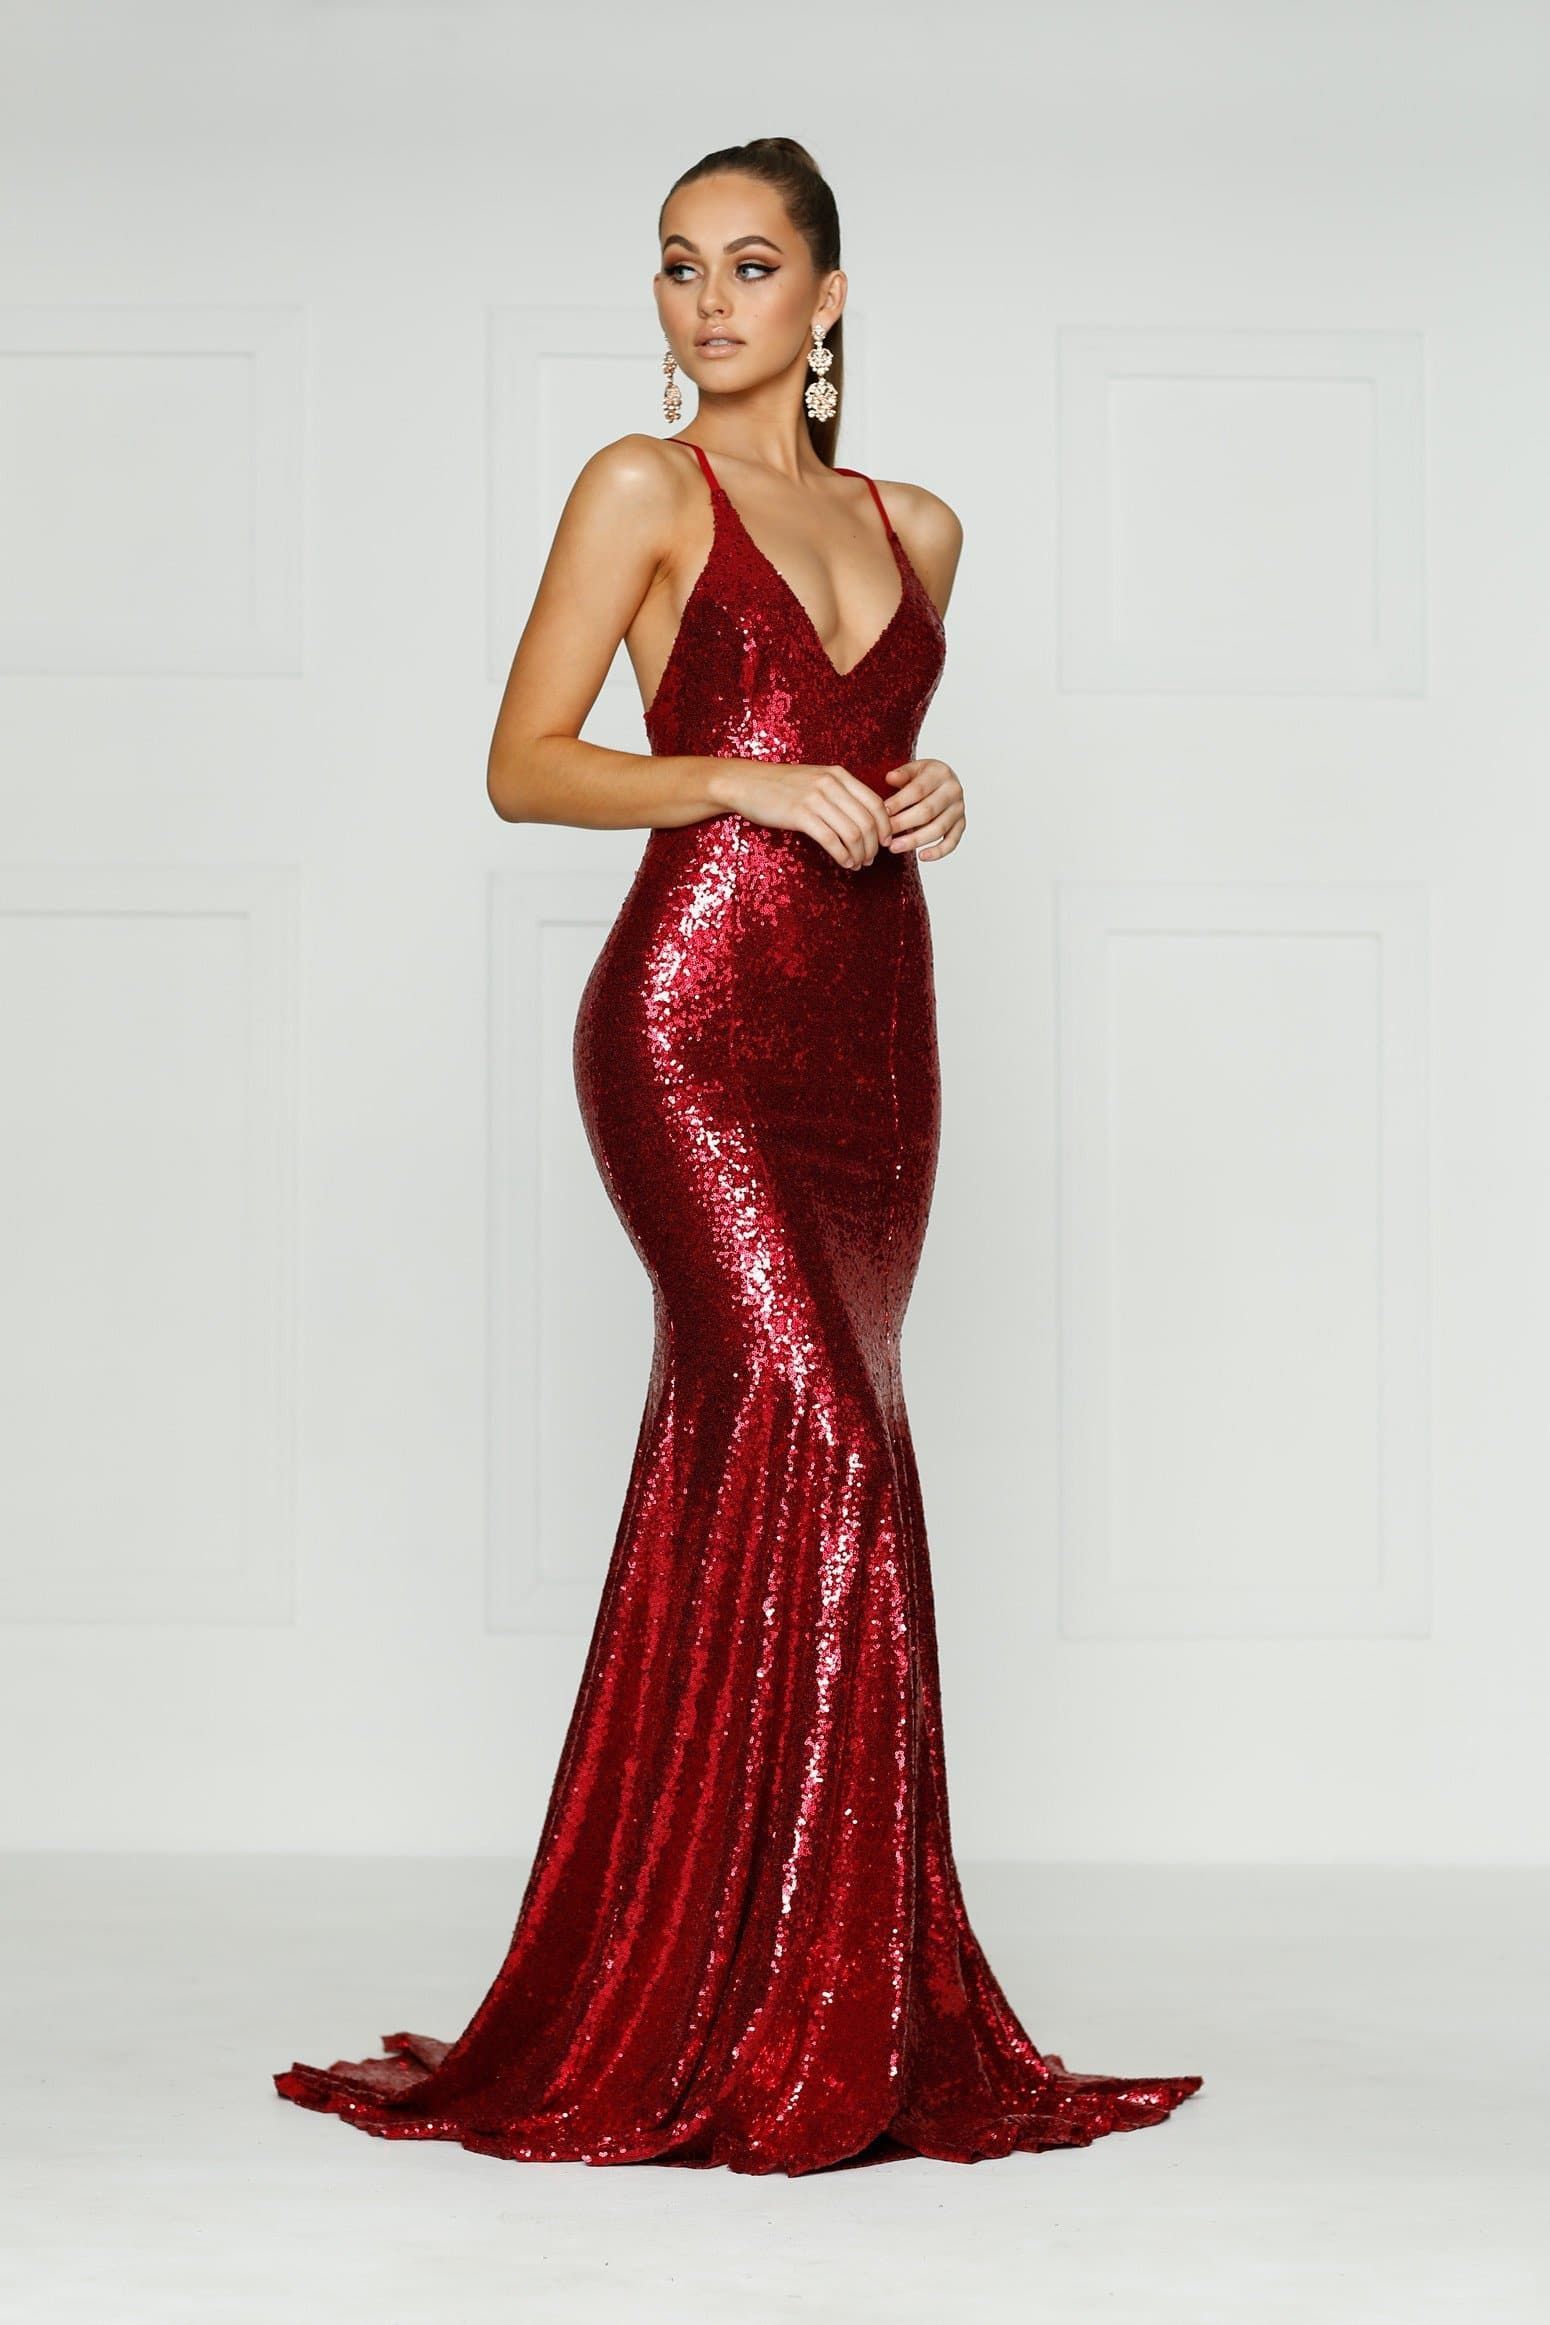 A&N Kendall - Red Sequin Gown with V Neck and Criss Cross Back – A&N ...